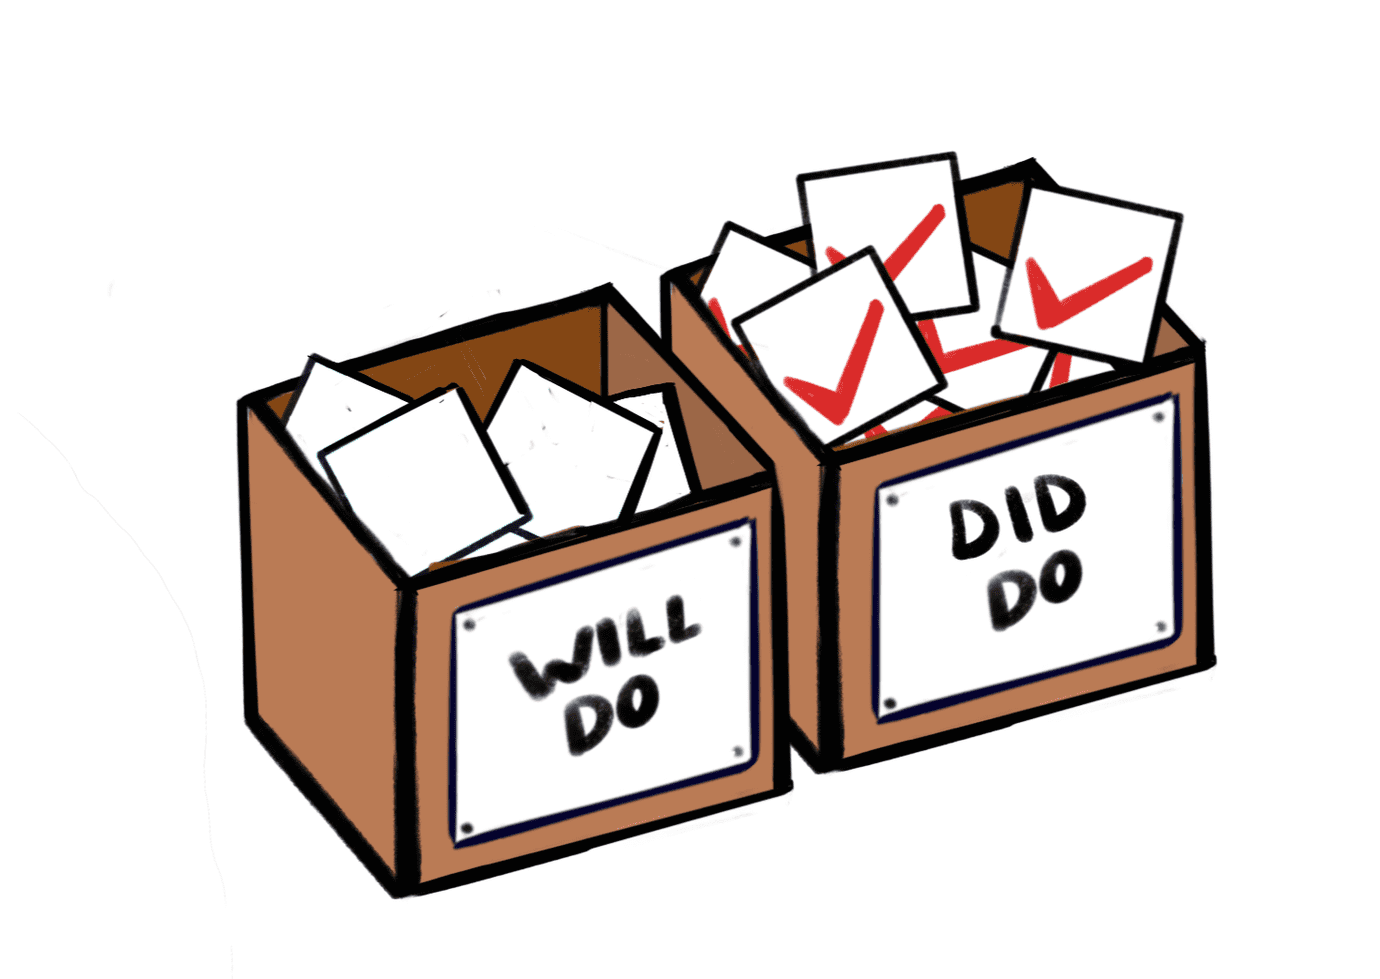 """will do"" cardboard box has fewer items, ""did do"" box is full of check marks"